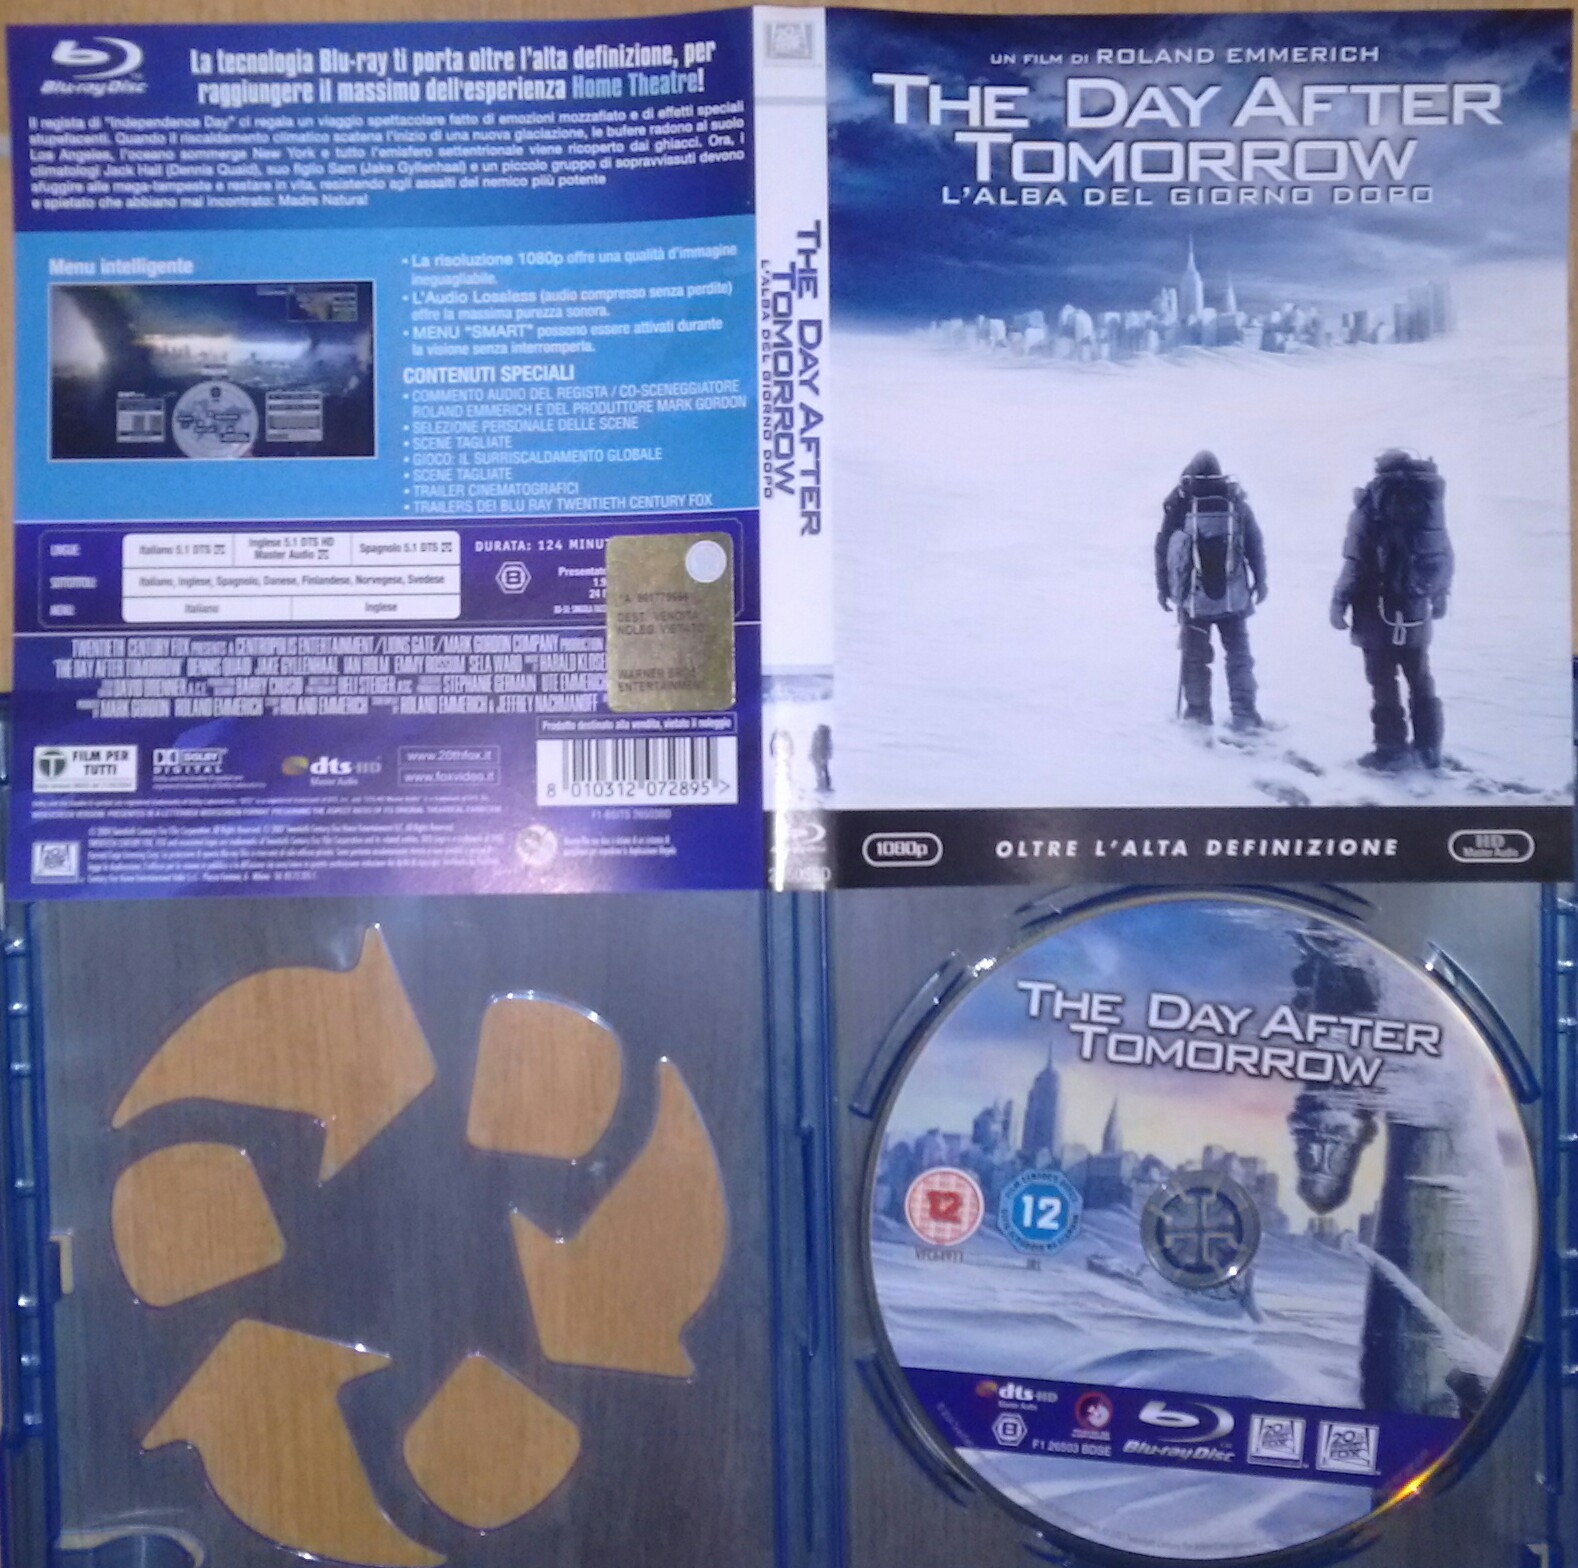 ROLAND EMMERICH – THE DAY AFTER TOMORROW. L'ALBA DEL GIORNO DOPO